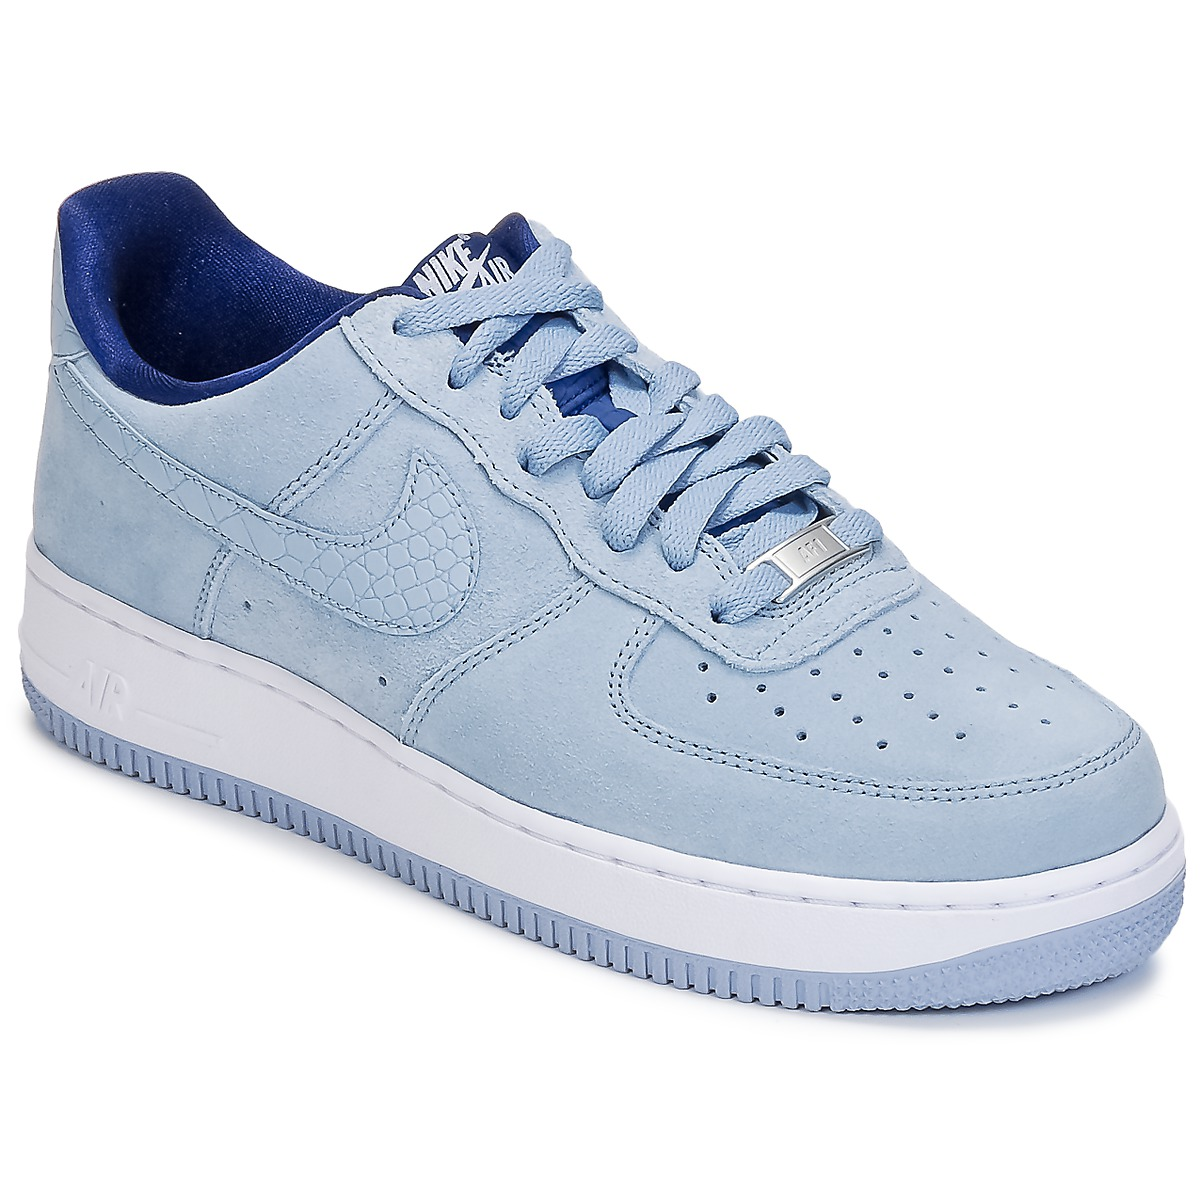 baskets basses nike air force 1 39 07 seasonal w bleu baskets femme spartoo ventes pas. Black Bedroom Furniture Sets. Home Design Ideas